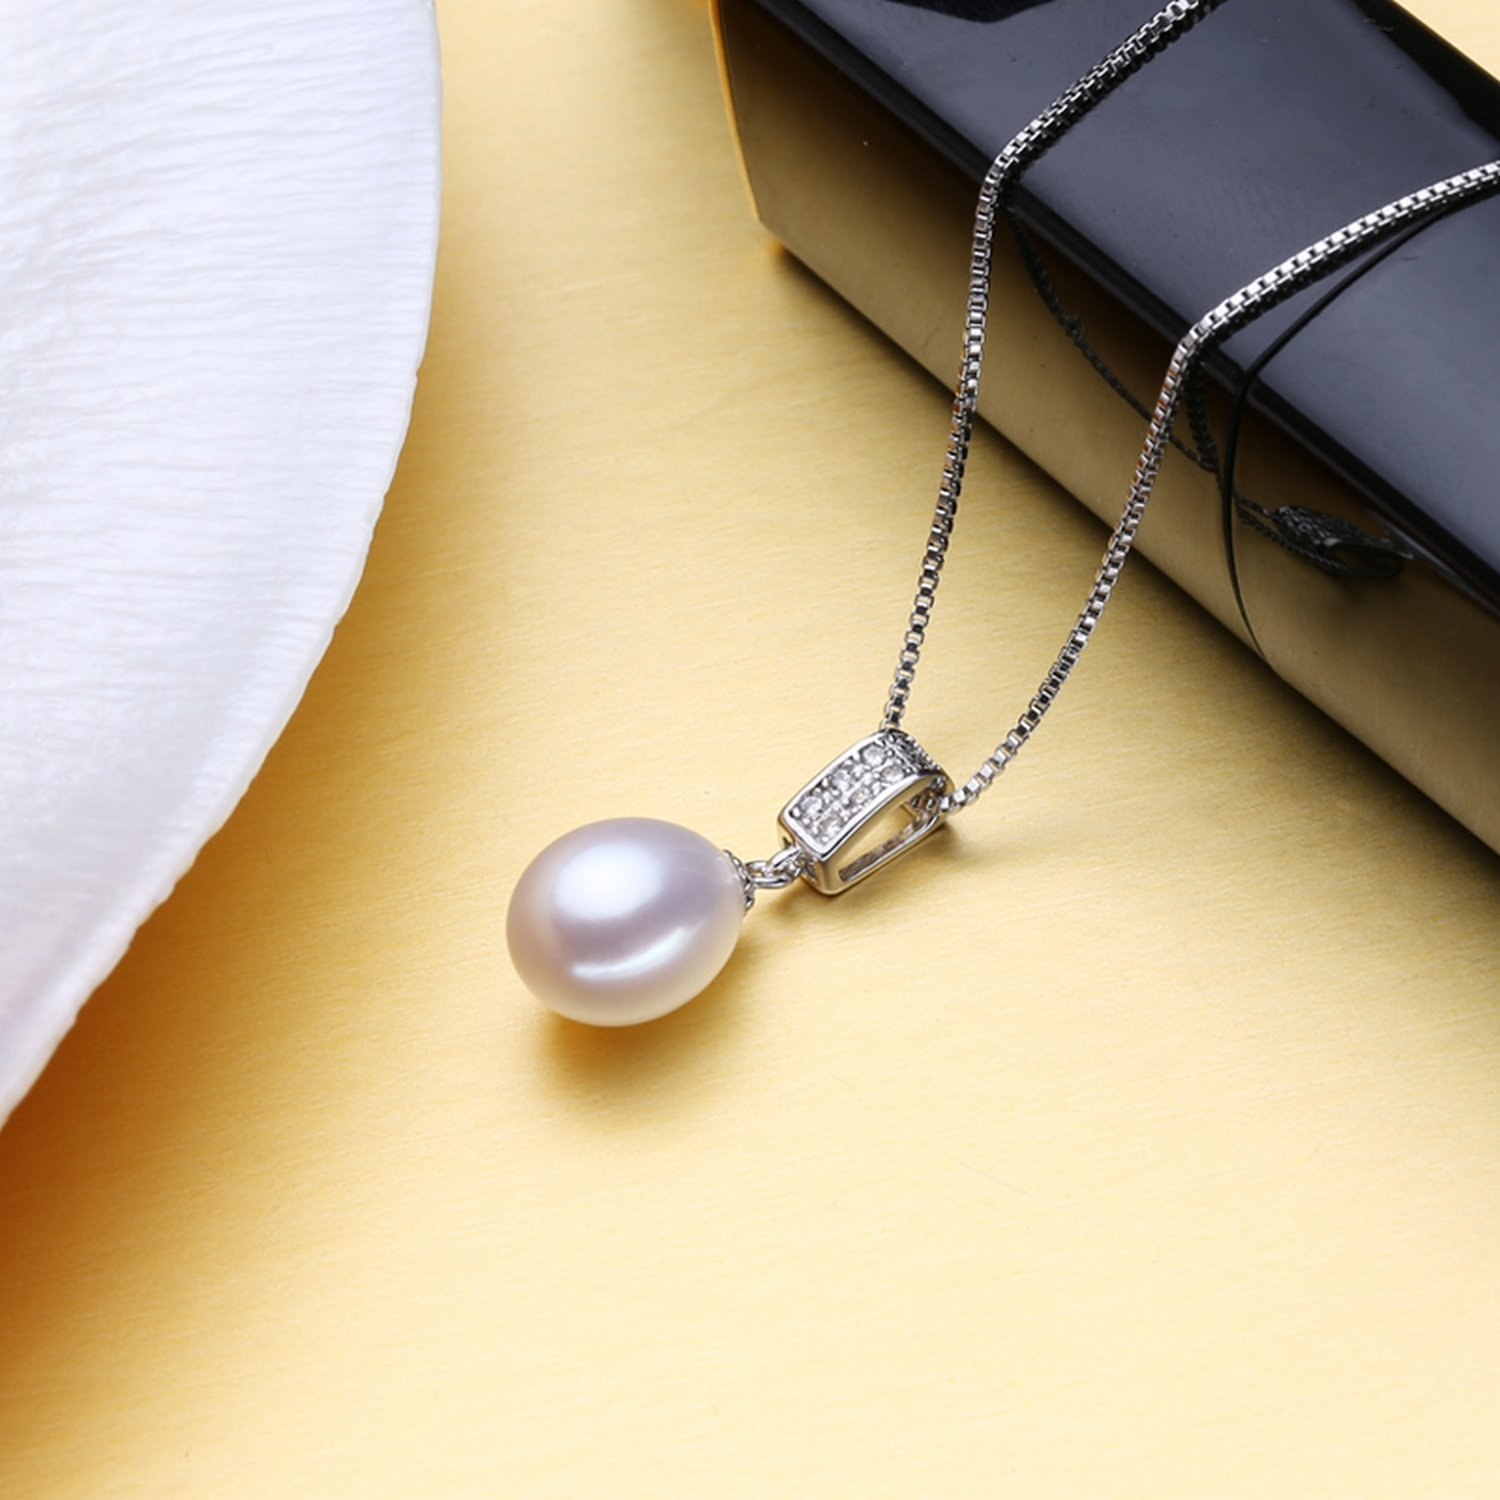 CS-DB Jewelry Silver Vintage Pearl Fashion Design Chain Charm Pendants Necklaces